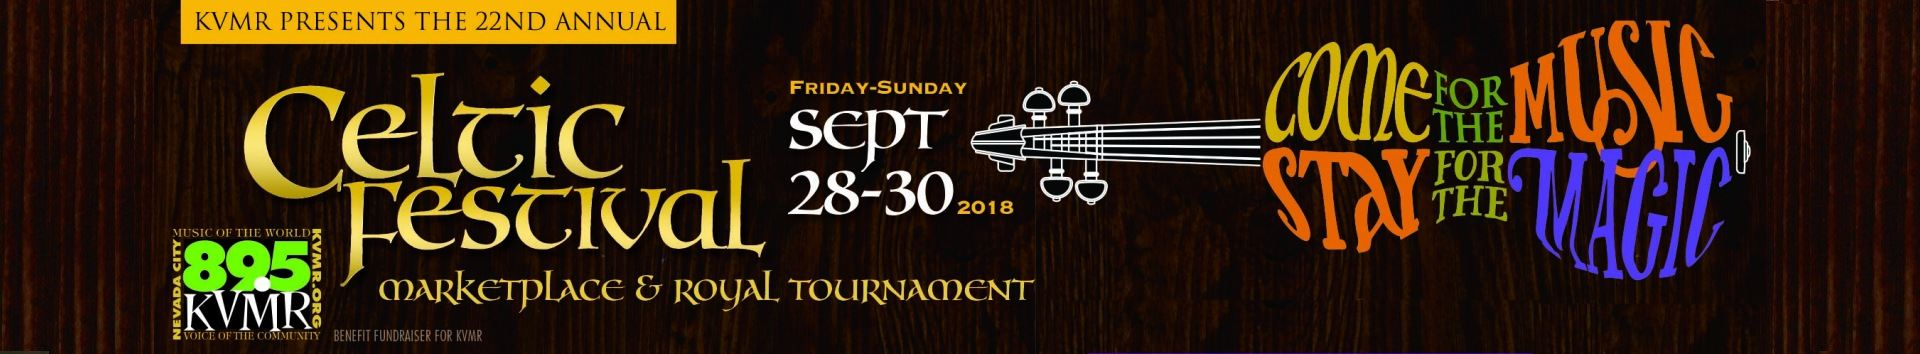 Celtic Festival Marketplace and Royal Tournament